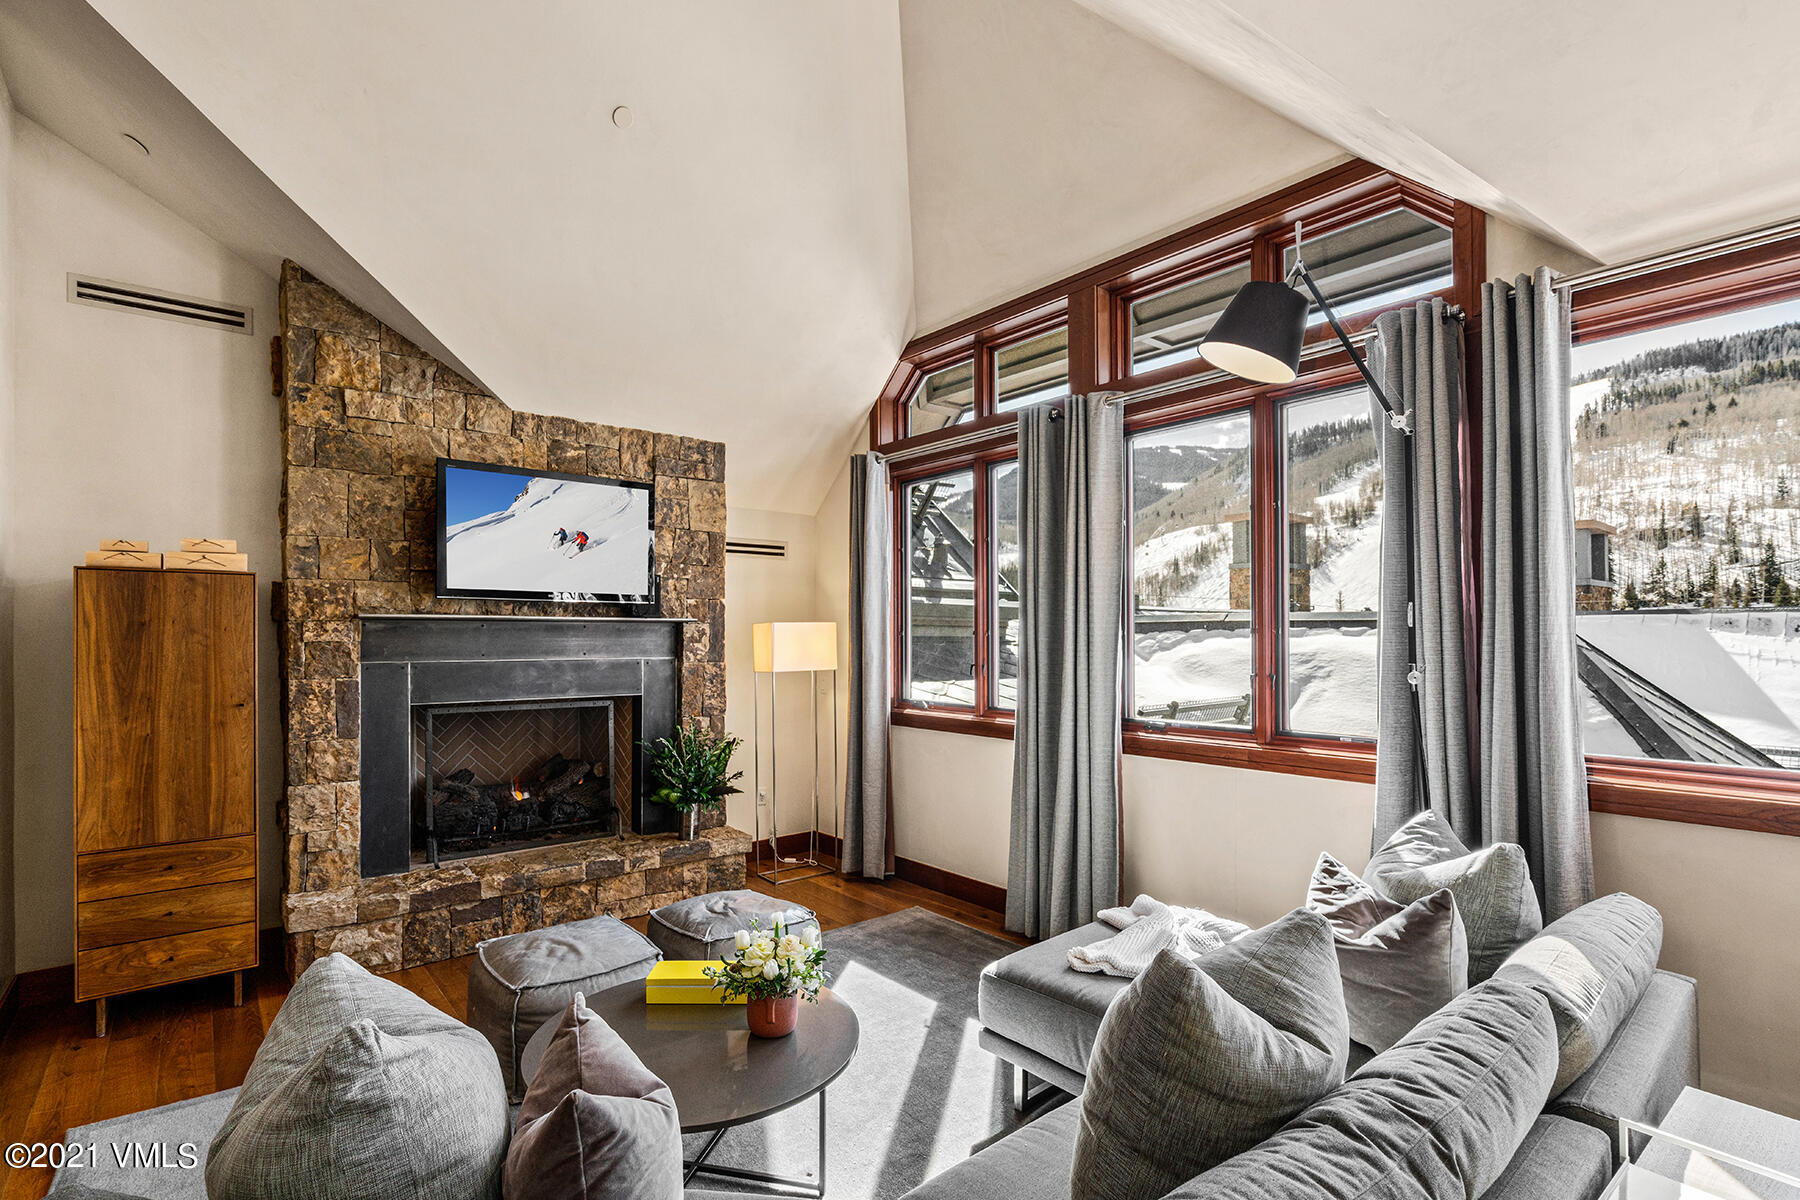 Penthouse Residence in the heart of Vail Village.  On-site amenities including 24hr concierge service, valet parking, indoor swimming pool & hot tub, fitness center and world-class, Matsuhisa dining.  Walking distance to everything lifts, shops and restaurants, the Best of Vail Village!